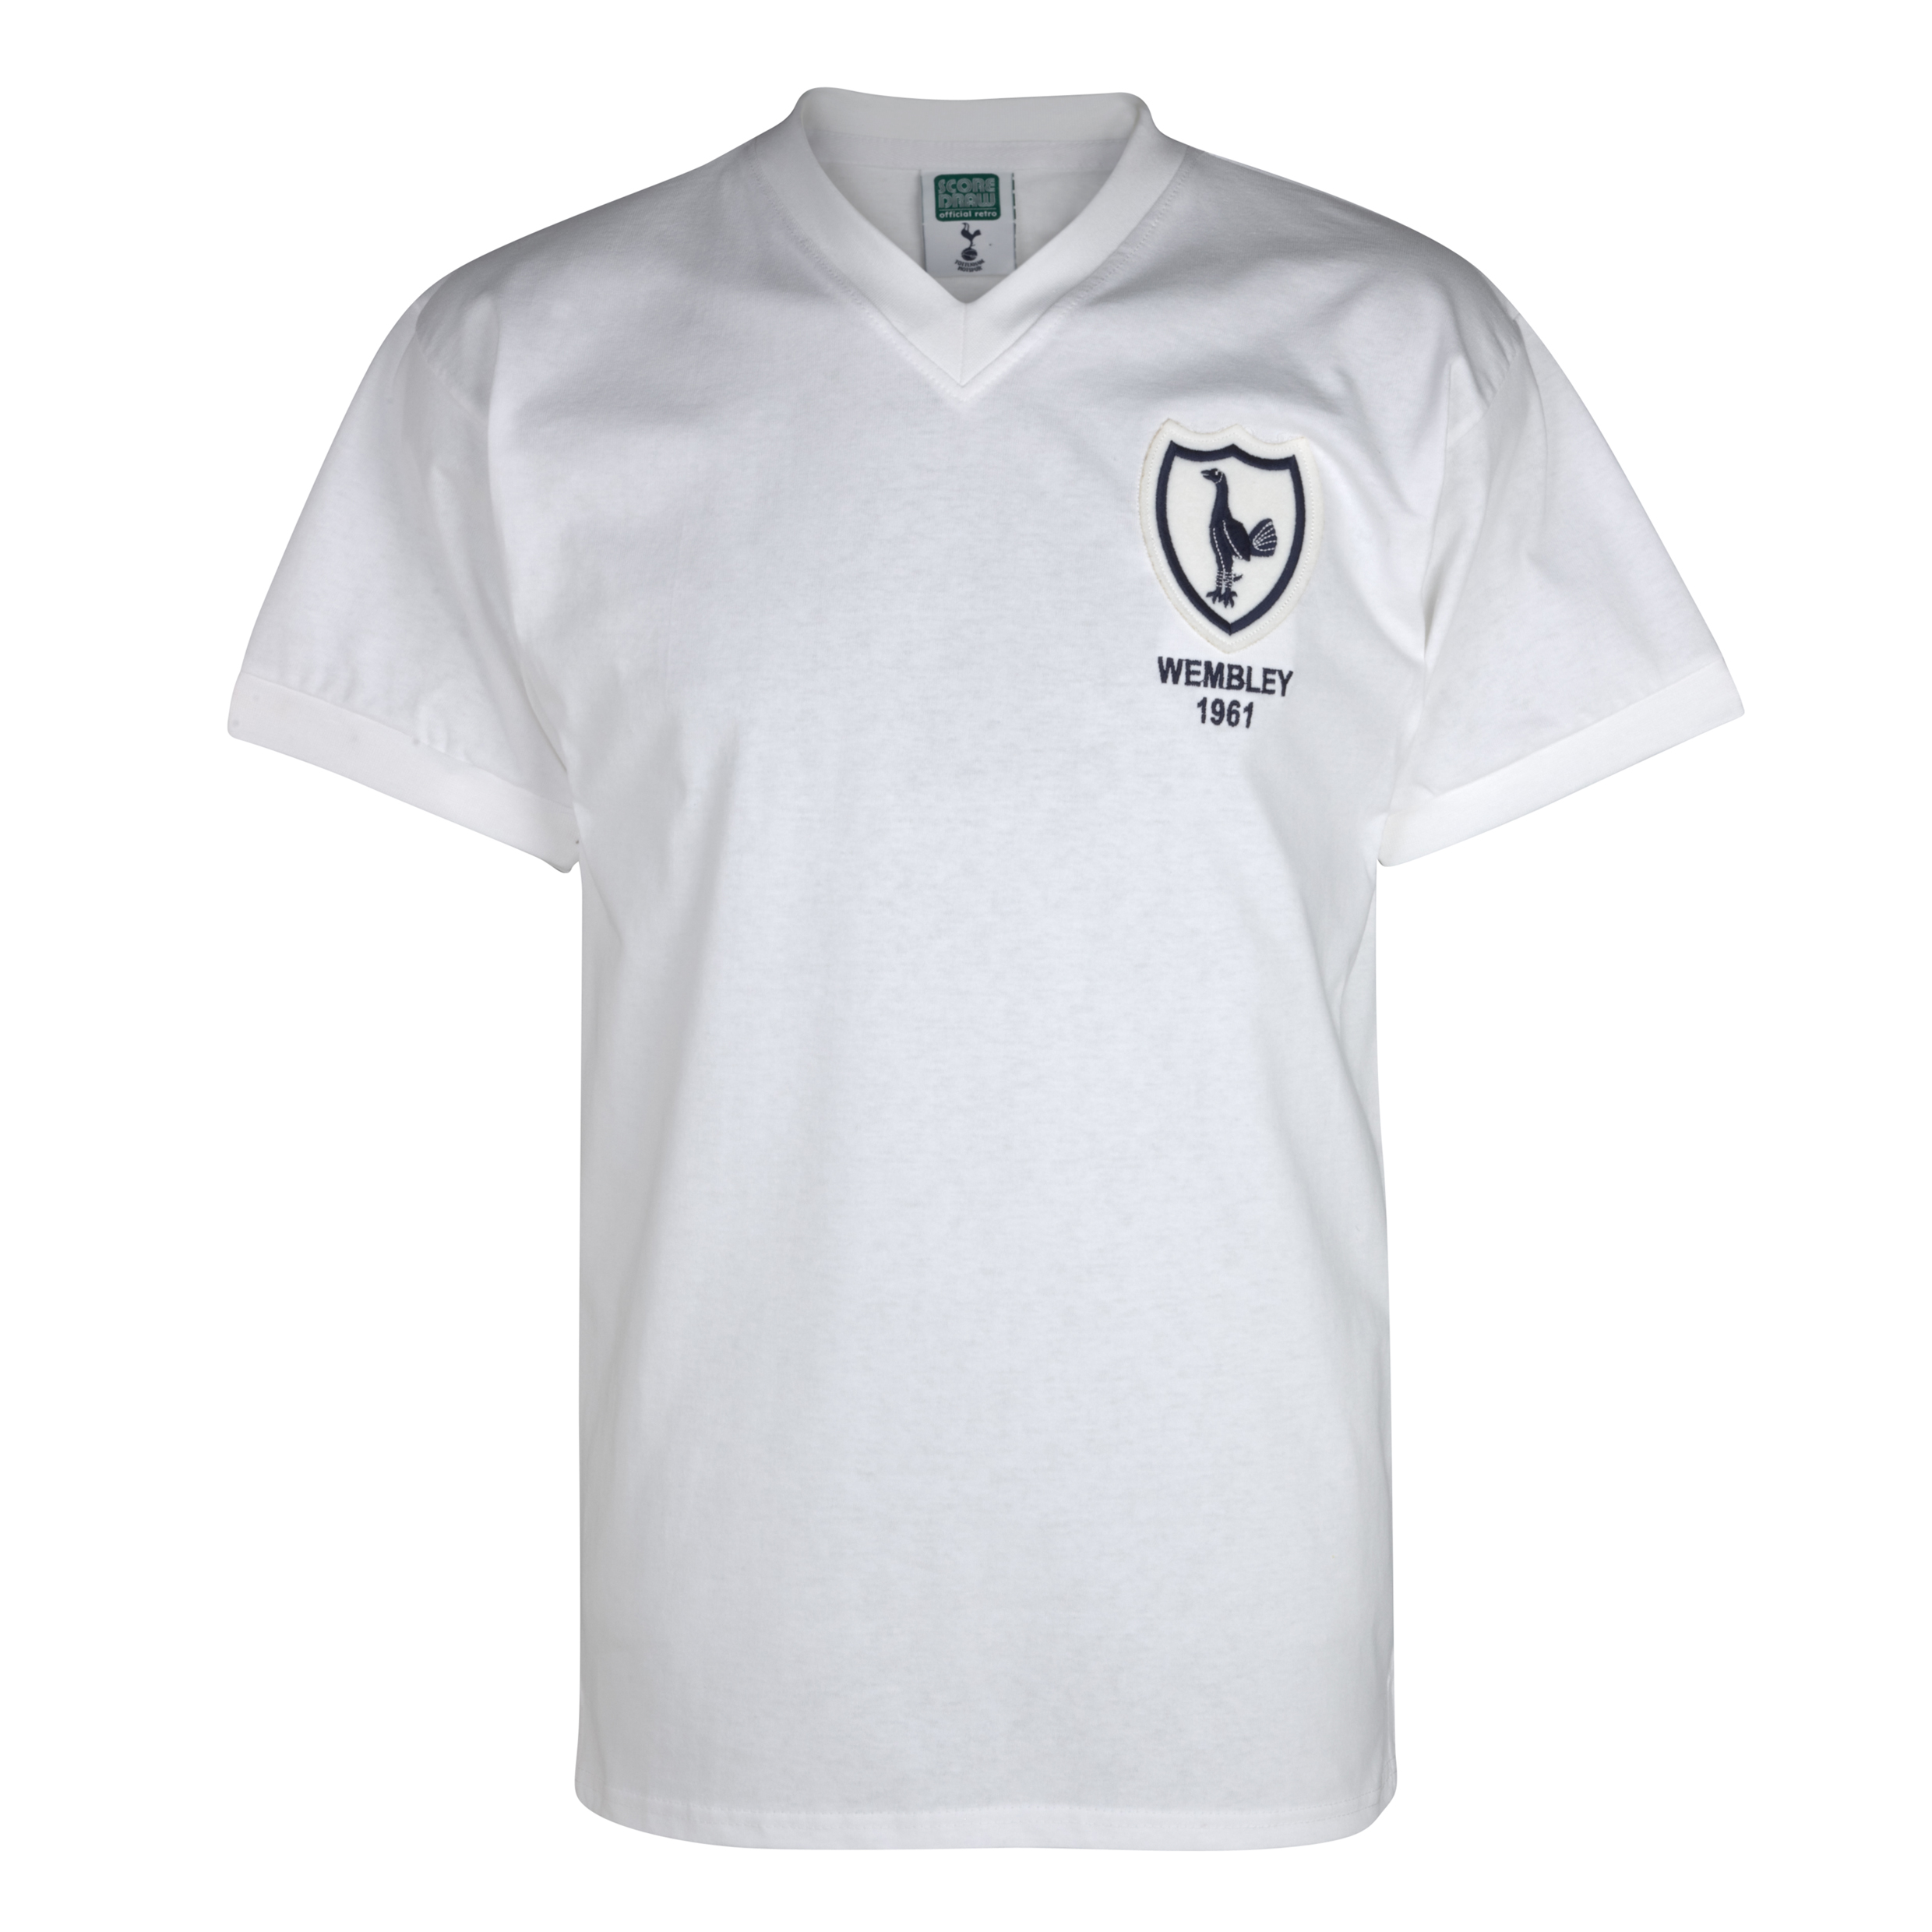 Tottenham Hotspur 1961 FA Cup Final No4 shirt